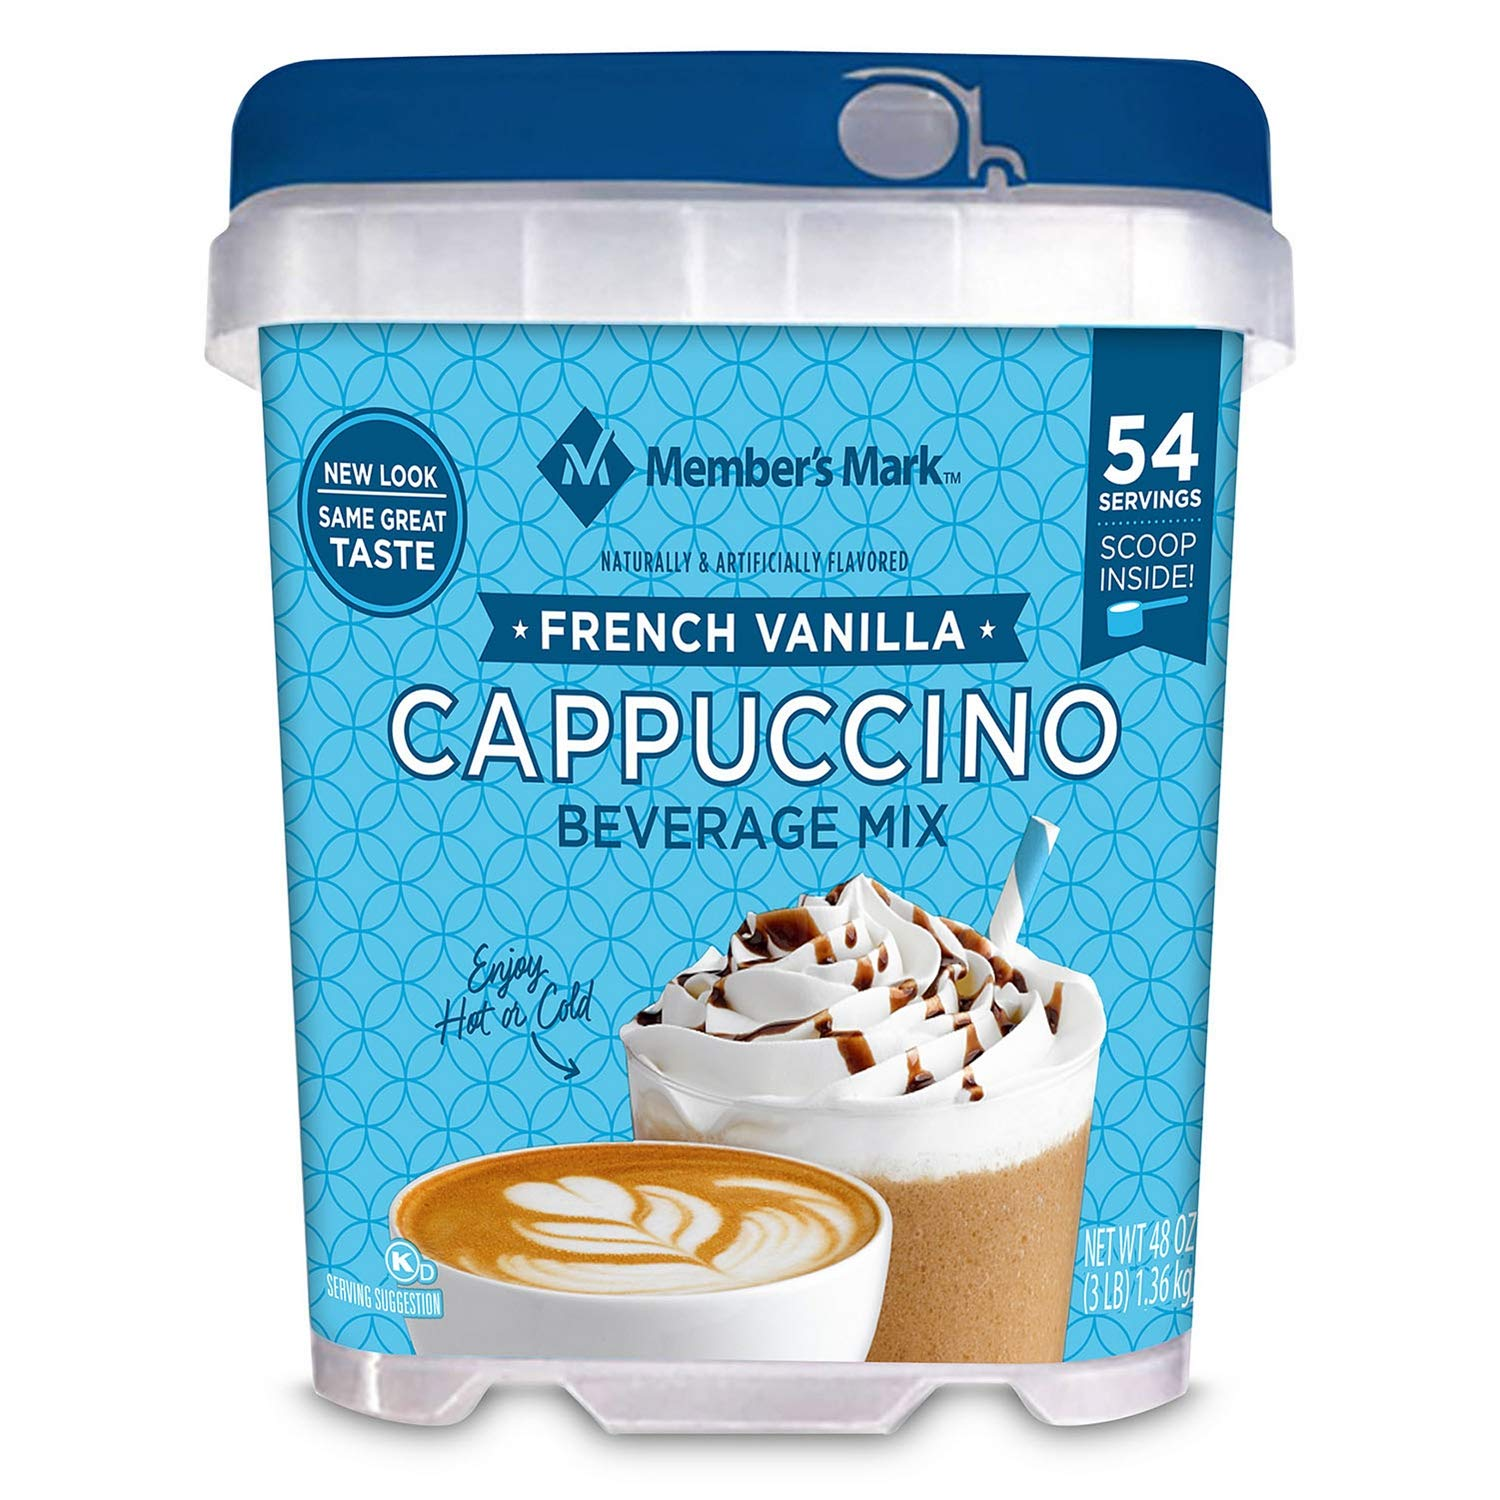 Member's Mark French Vanilla Cappuccino Beverage Mix 2Pack (48 oz Each)